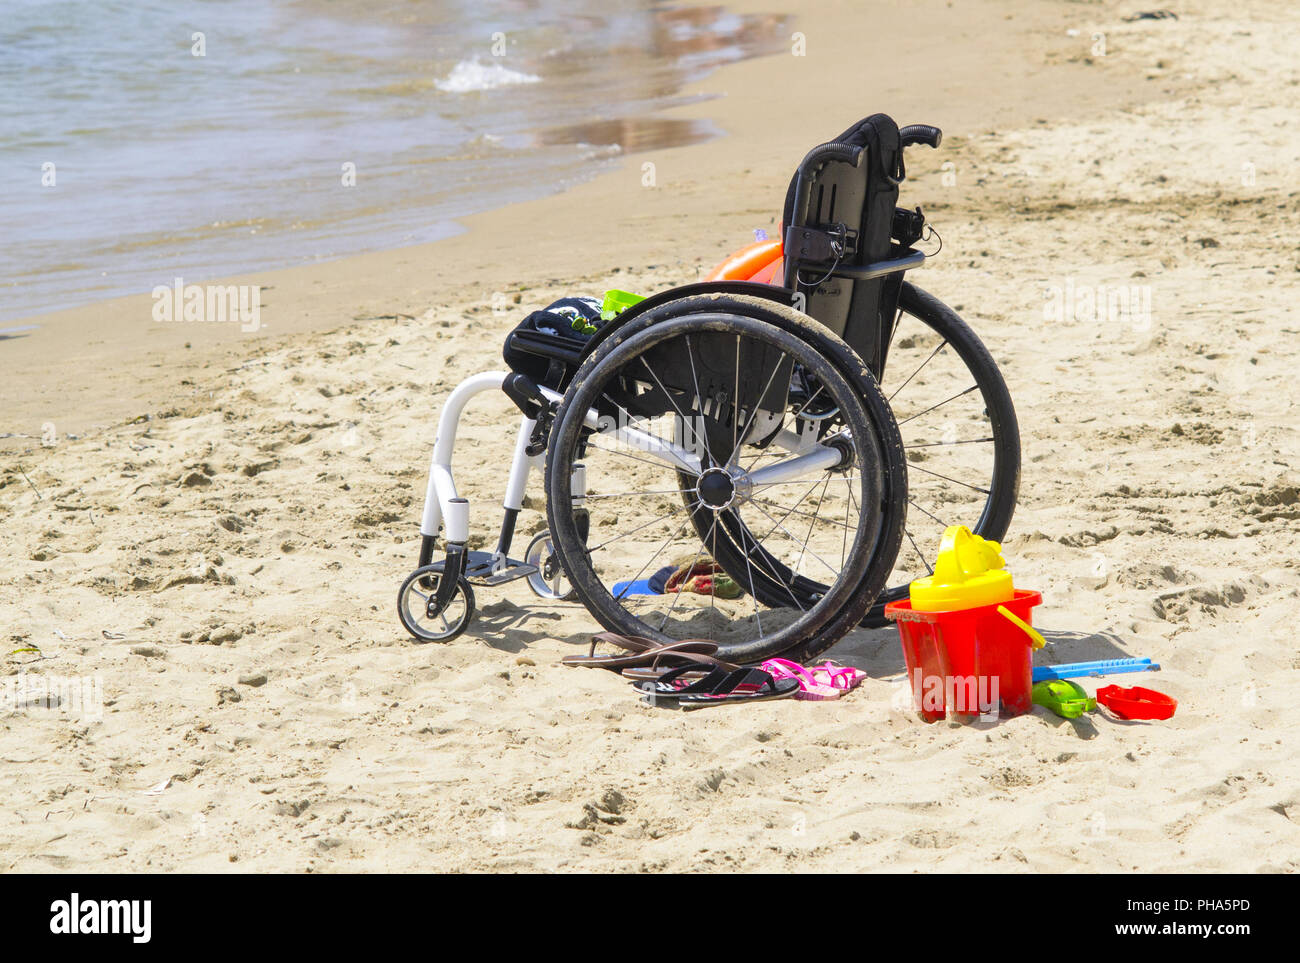 wheel chair on a bech for a disabled child - Stock Image